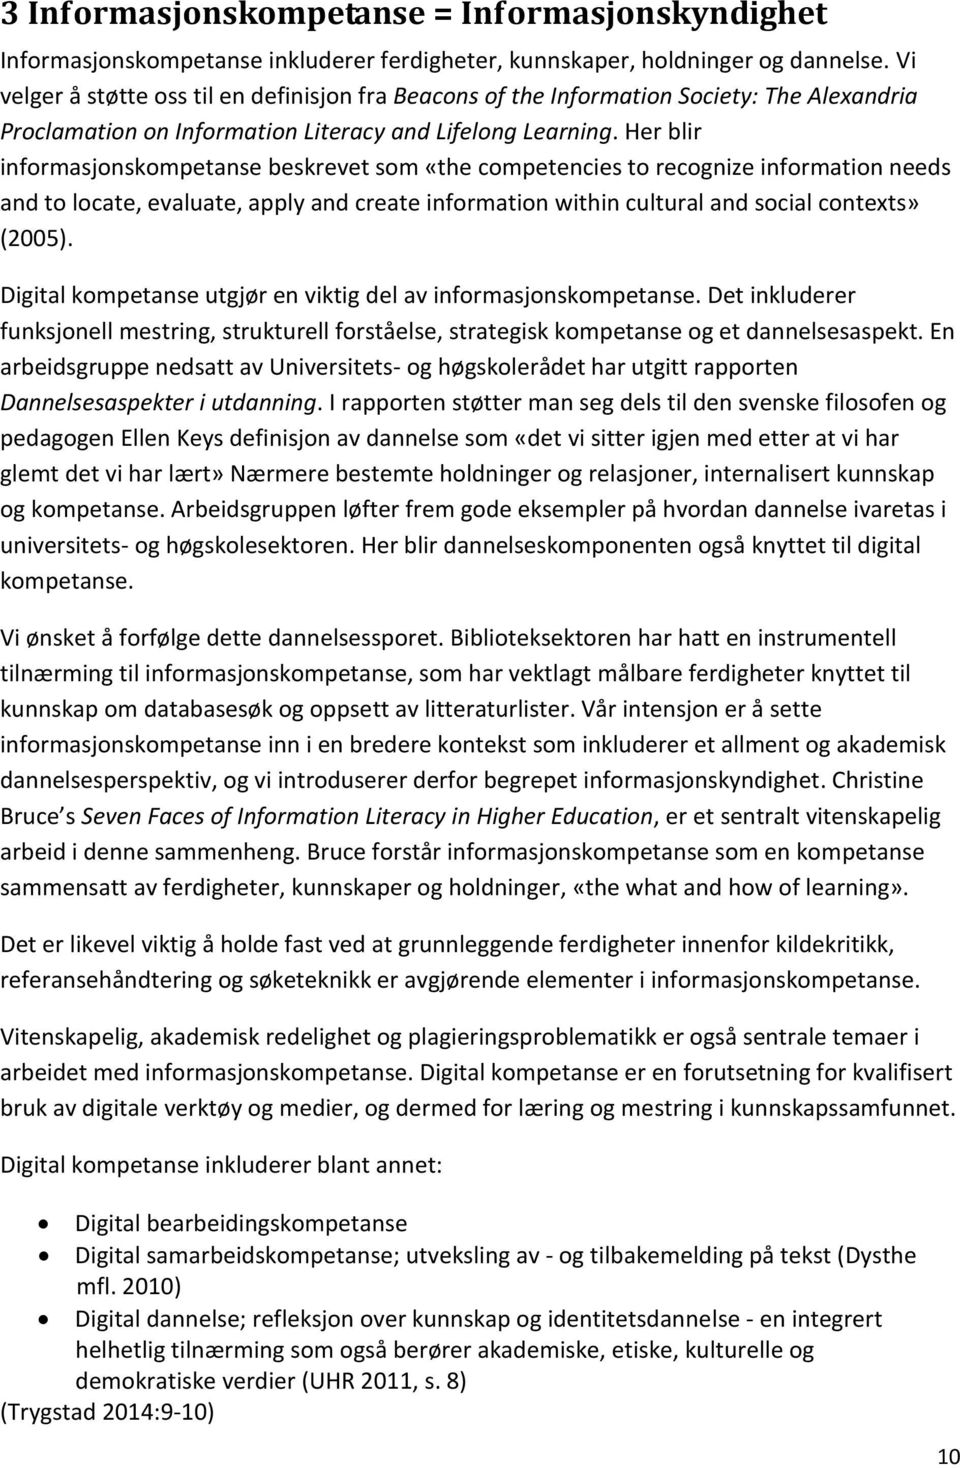 Her blir informasjonskompetanse beskrevet som «the competencies to recognize information needs and to locate, evaluate, apply and create information within cultural and social contexts» (2005).